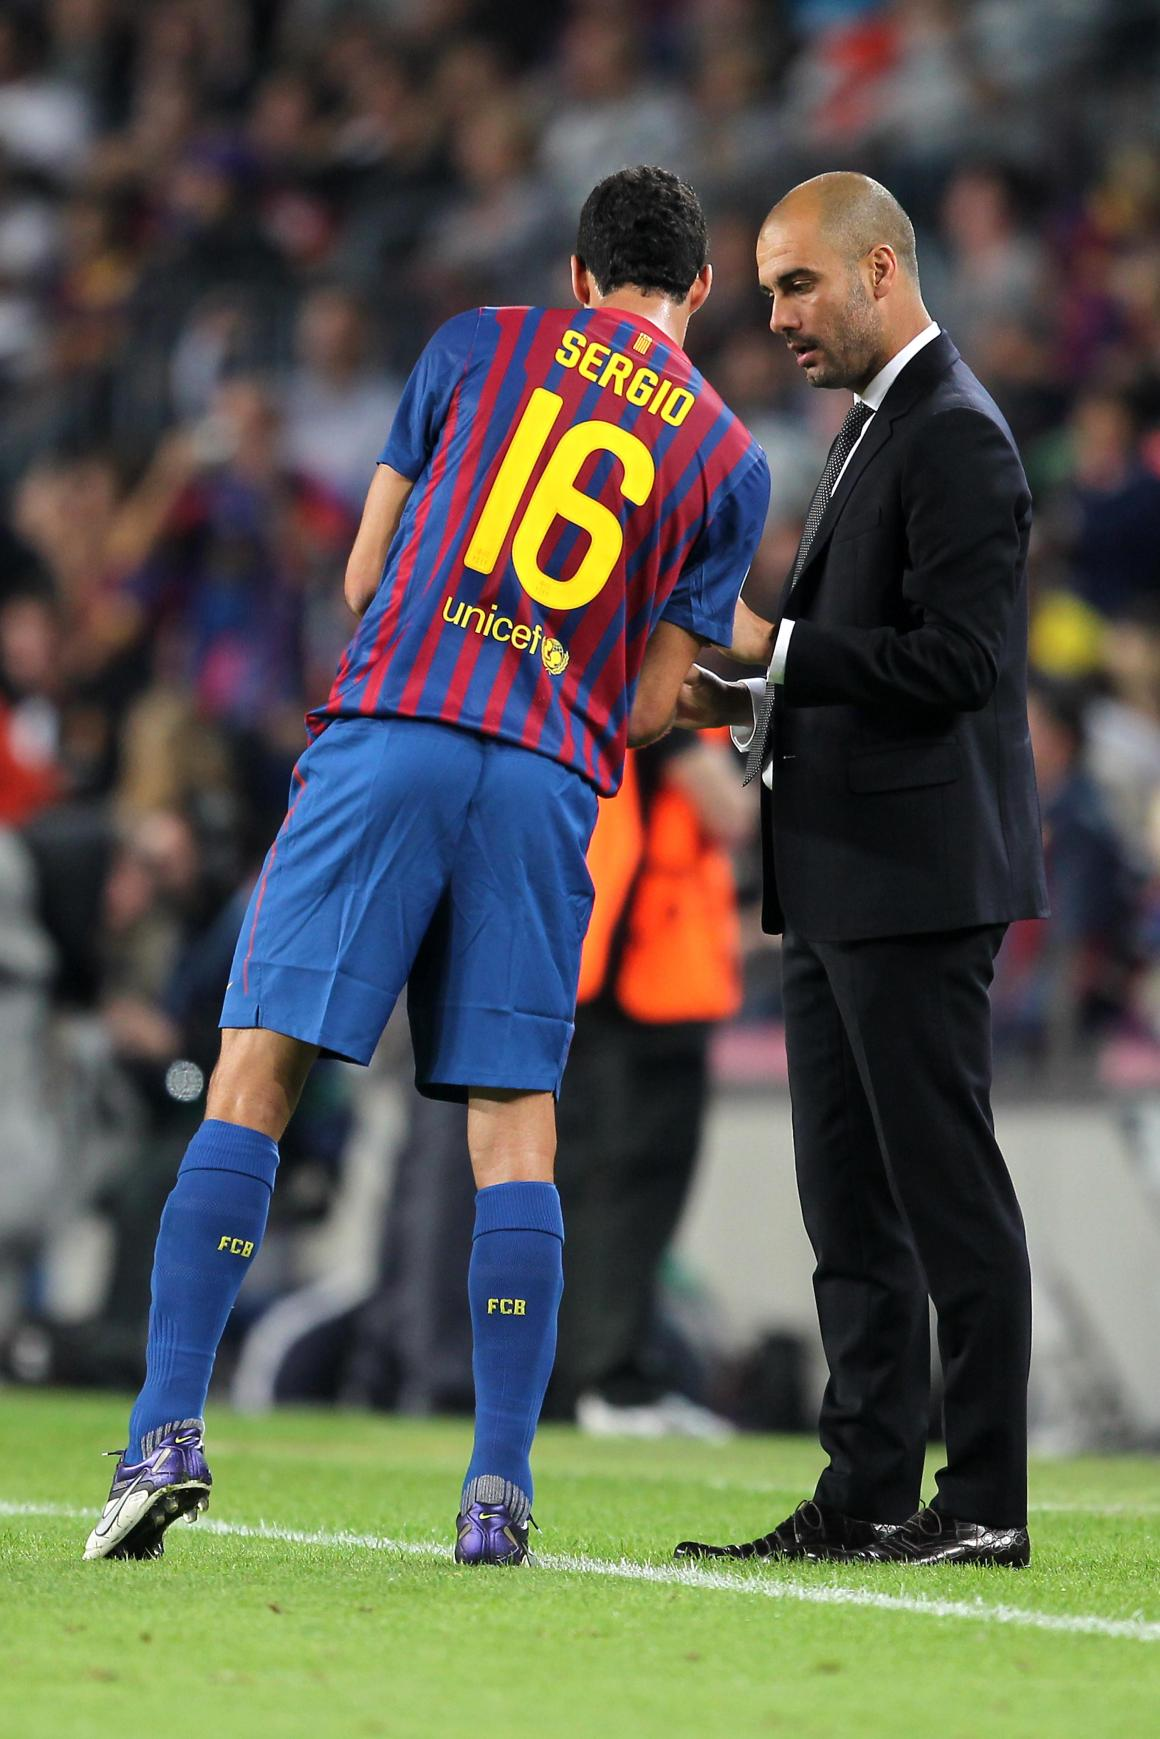 Manchester City boss Pep Guardiola enquires about the availability of Barcelona's Sergio Busquets